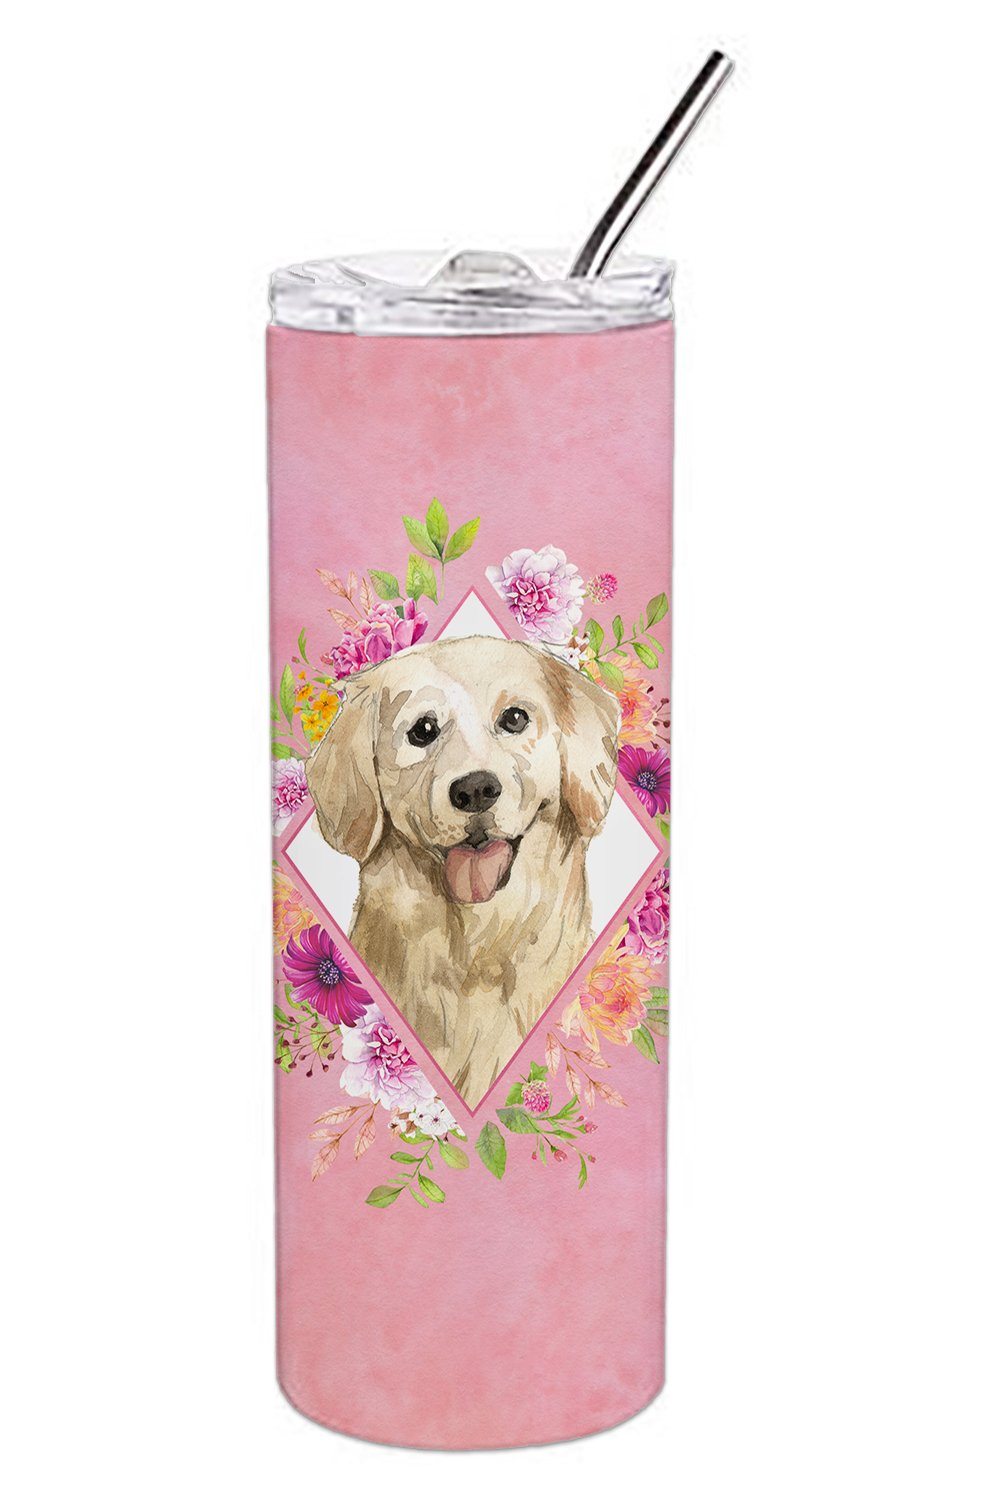 Golden Retriever Pink Flowers Double Walled Stainless Steel 20 oz Skinny Tumbler CK4235TBL20 by Caroline's Treasures